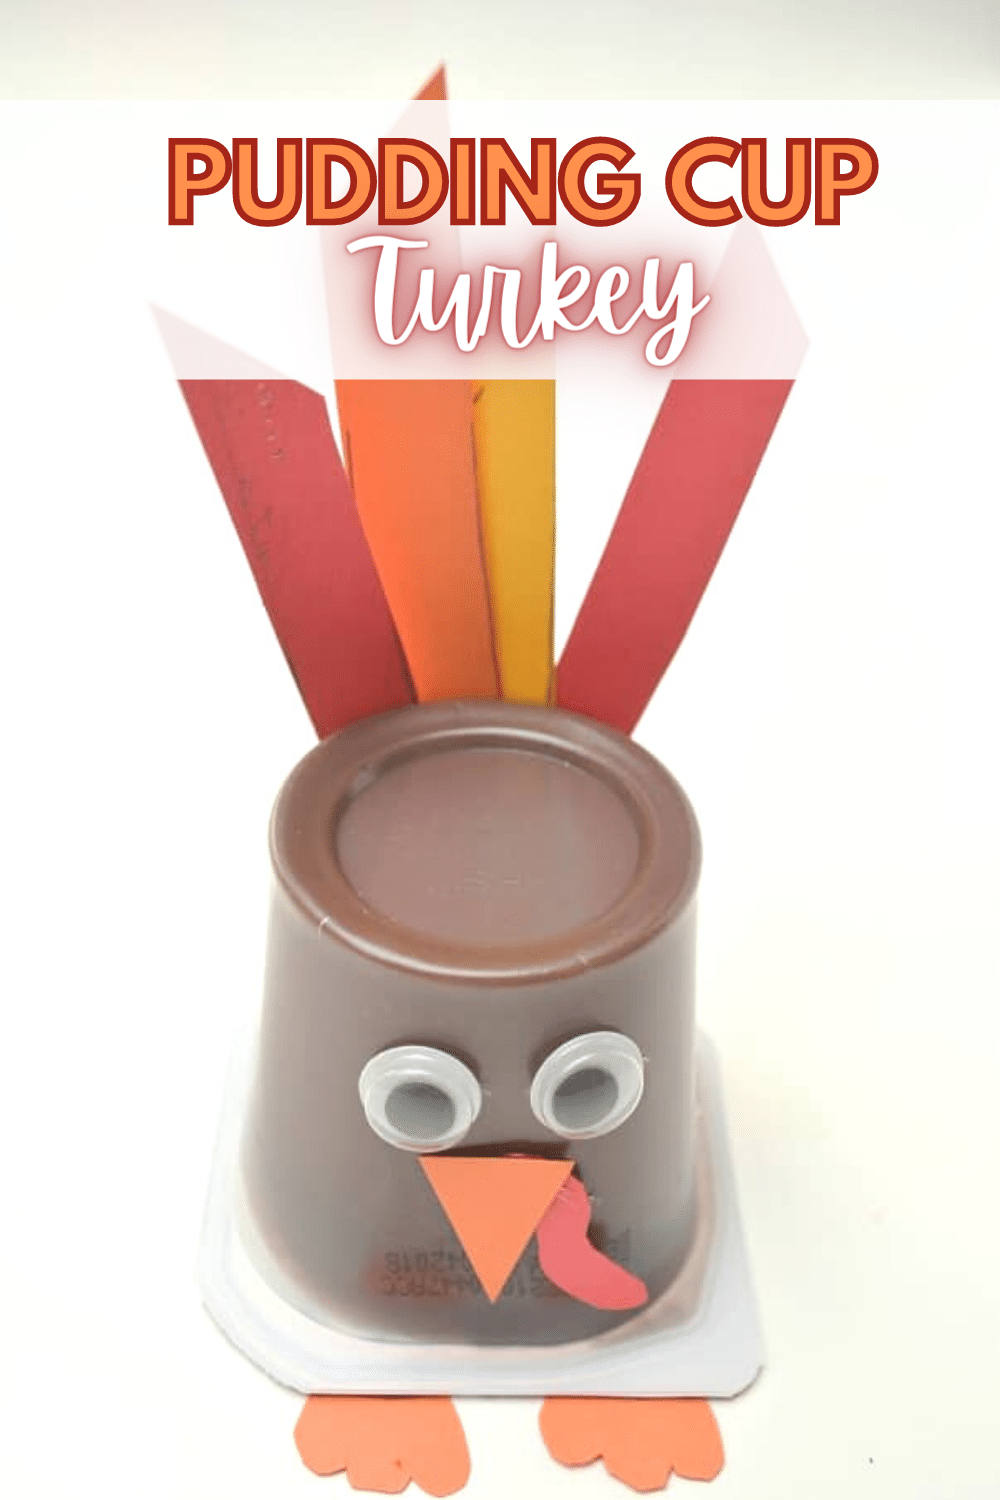 This pudding cup turkey craft is a super cute and easy way to treat your kids at Thanksgiving either in their lunches or for dessert. #turkeycraft #puddingcup #thanksgiving #forkids via @wondermomwannab